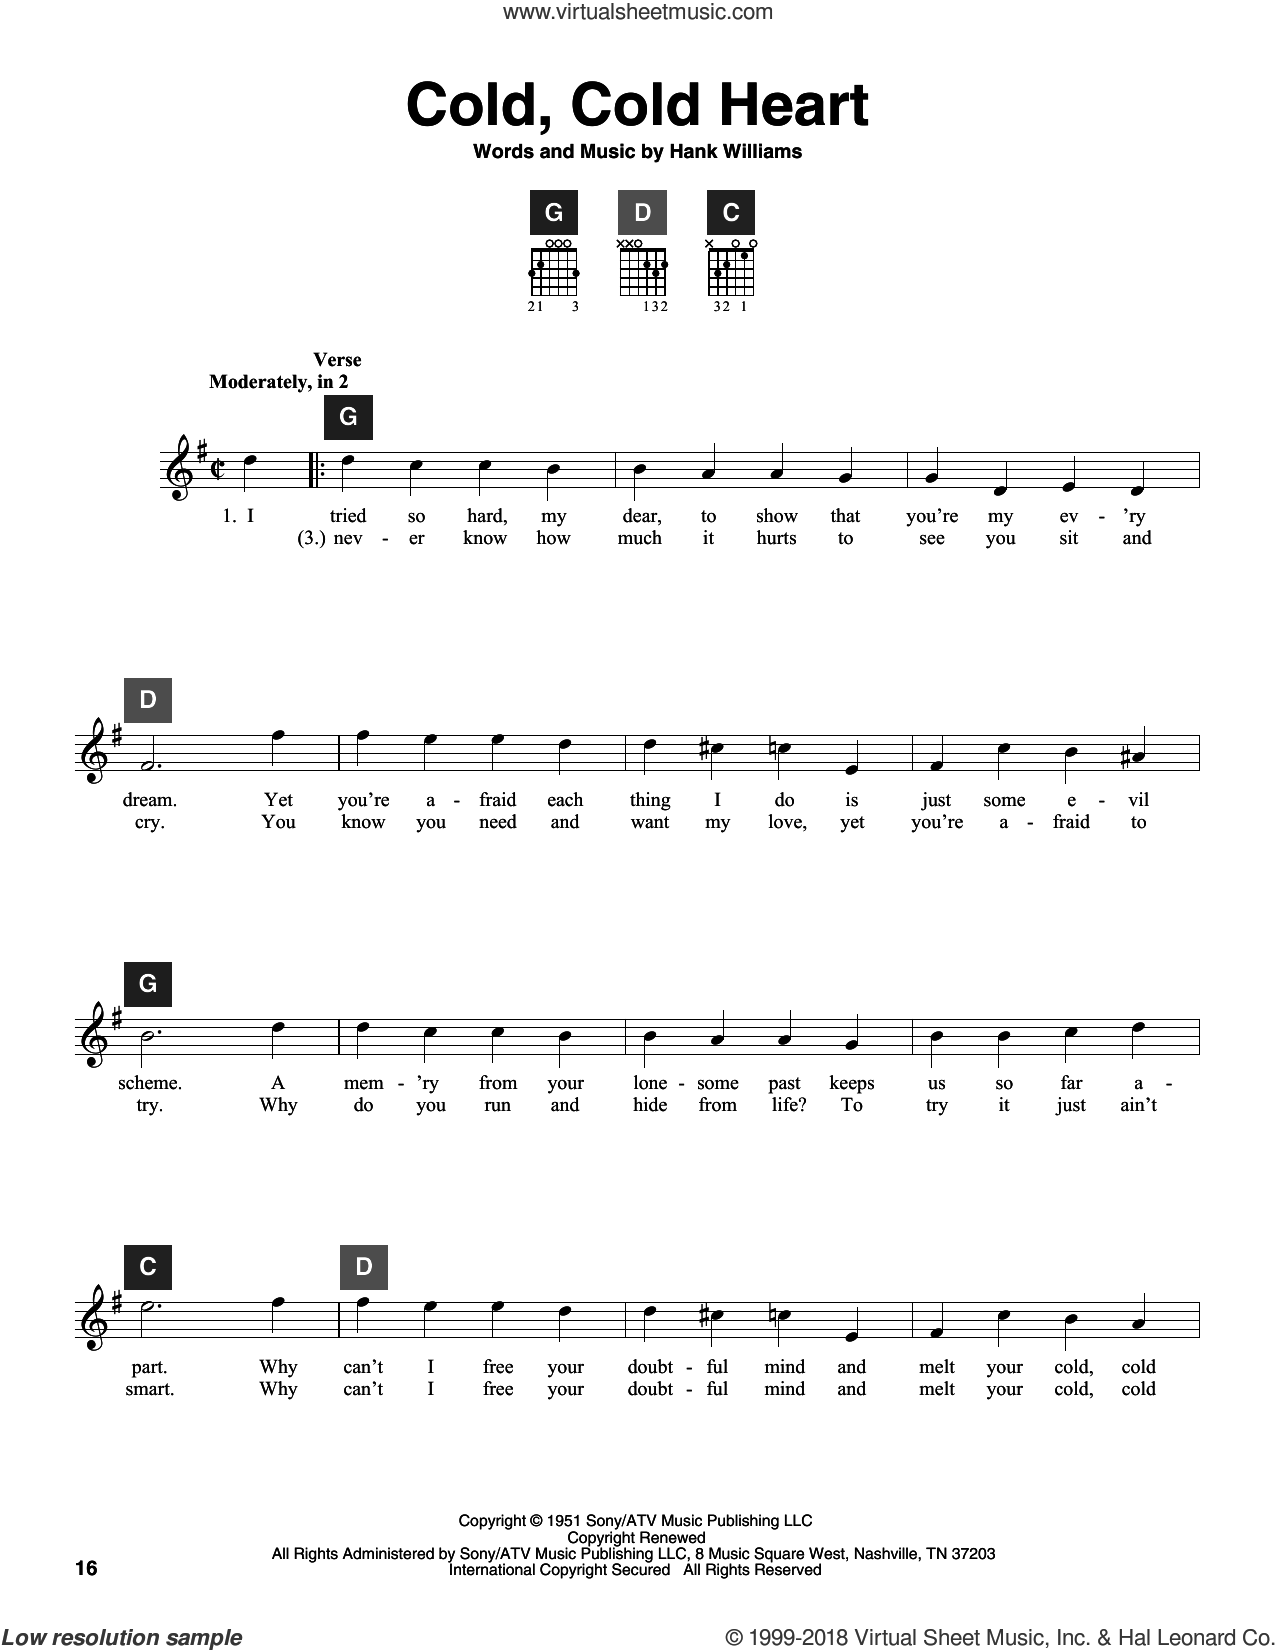 Cold, Cold Heart sheet music for guitar solo (ChordBuddy system) by Hank Williams